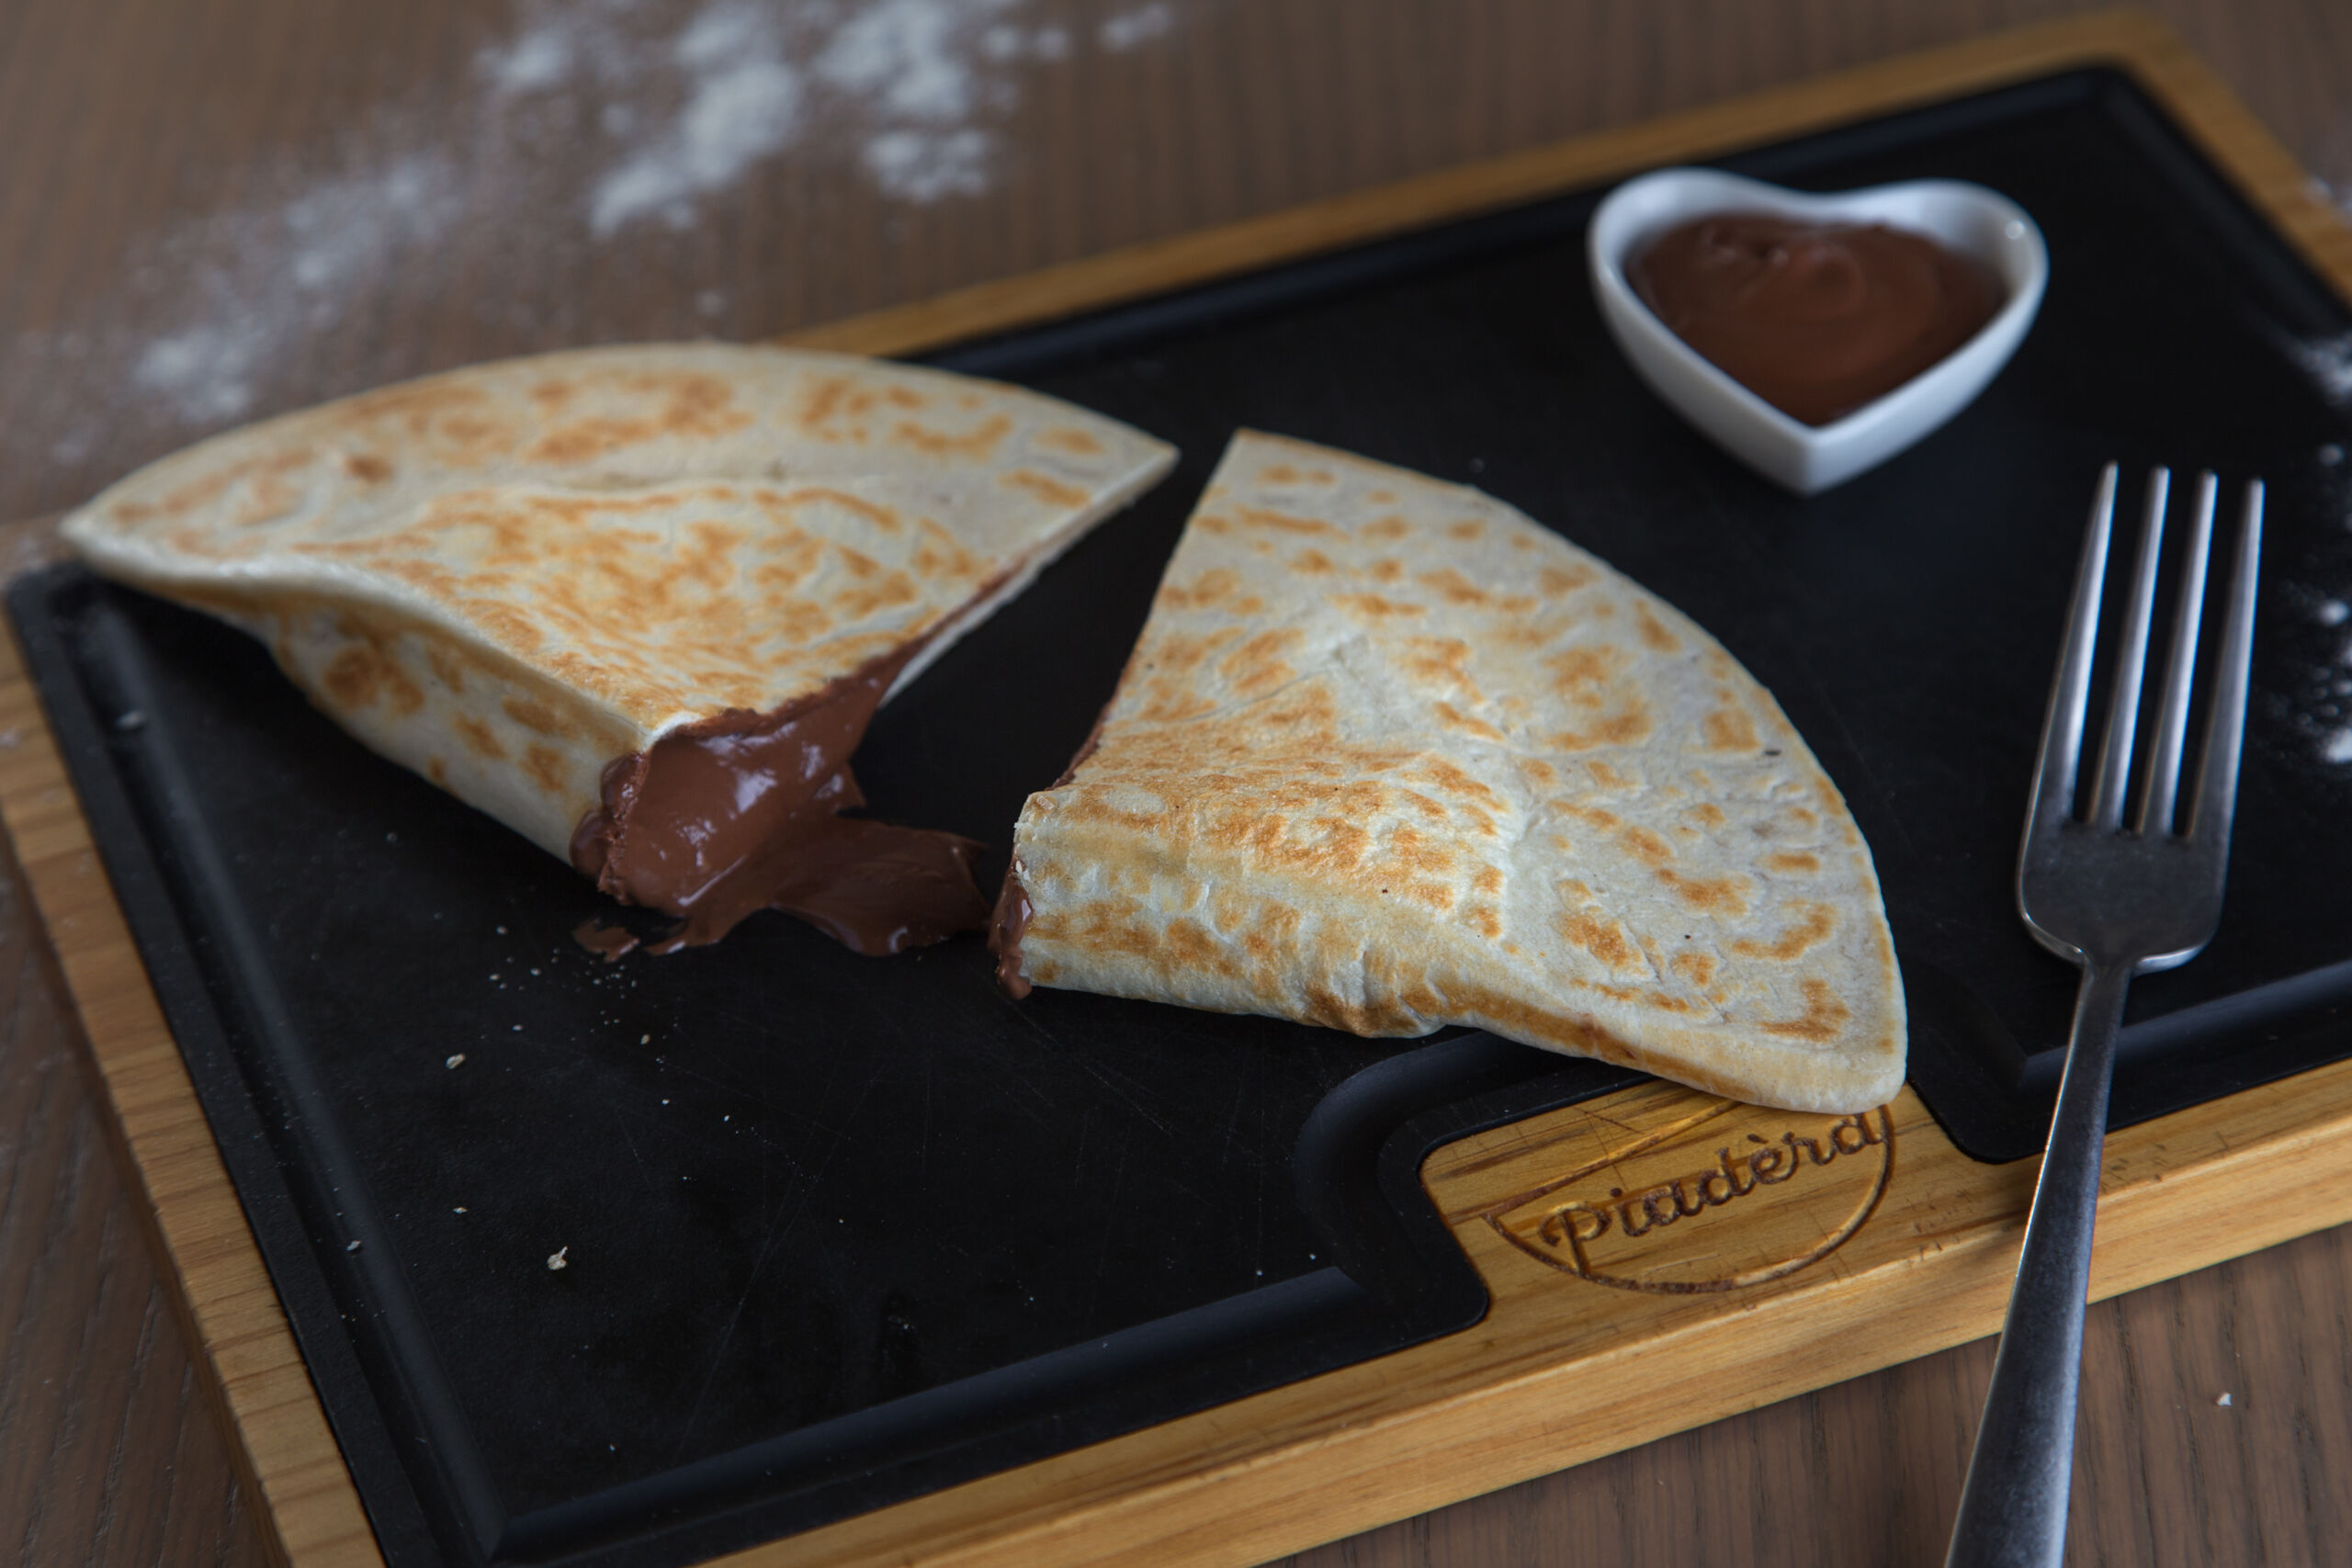 Calzone Nutella open